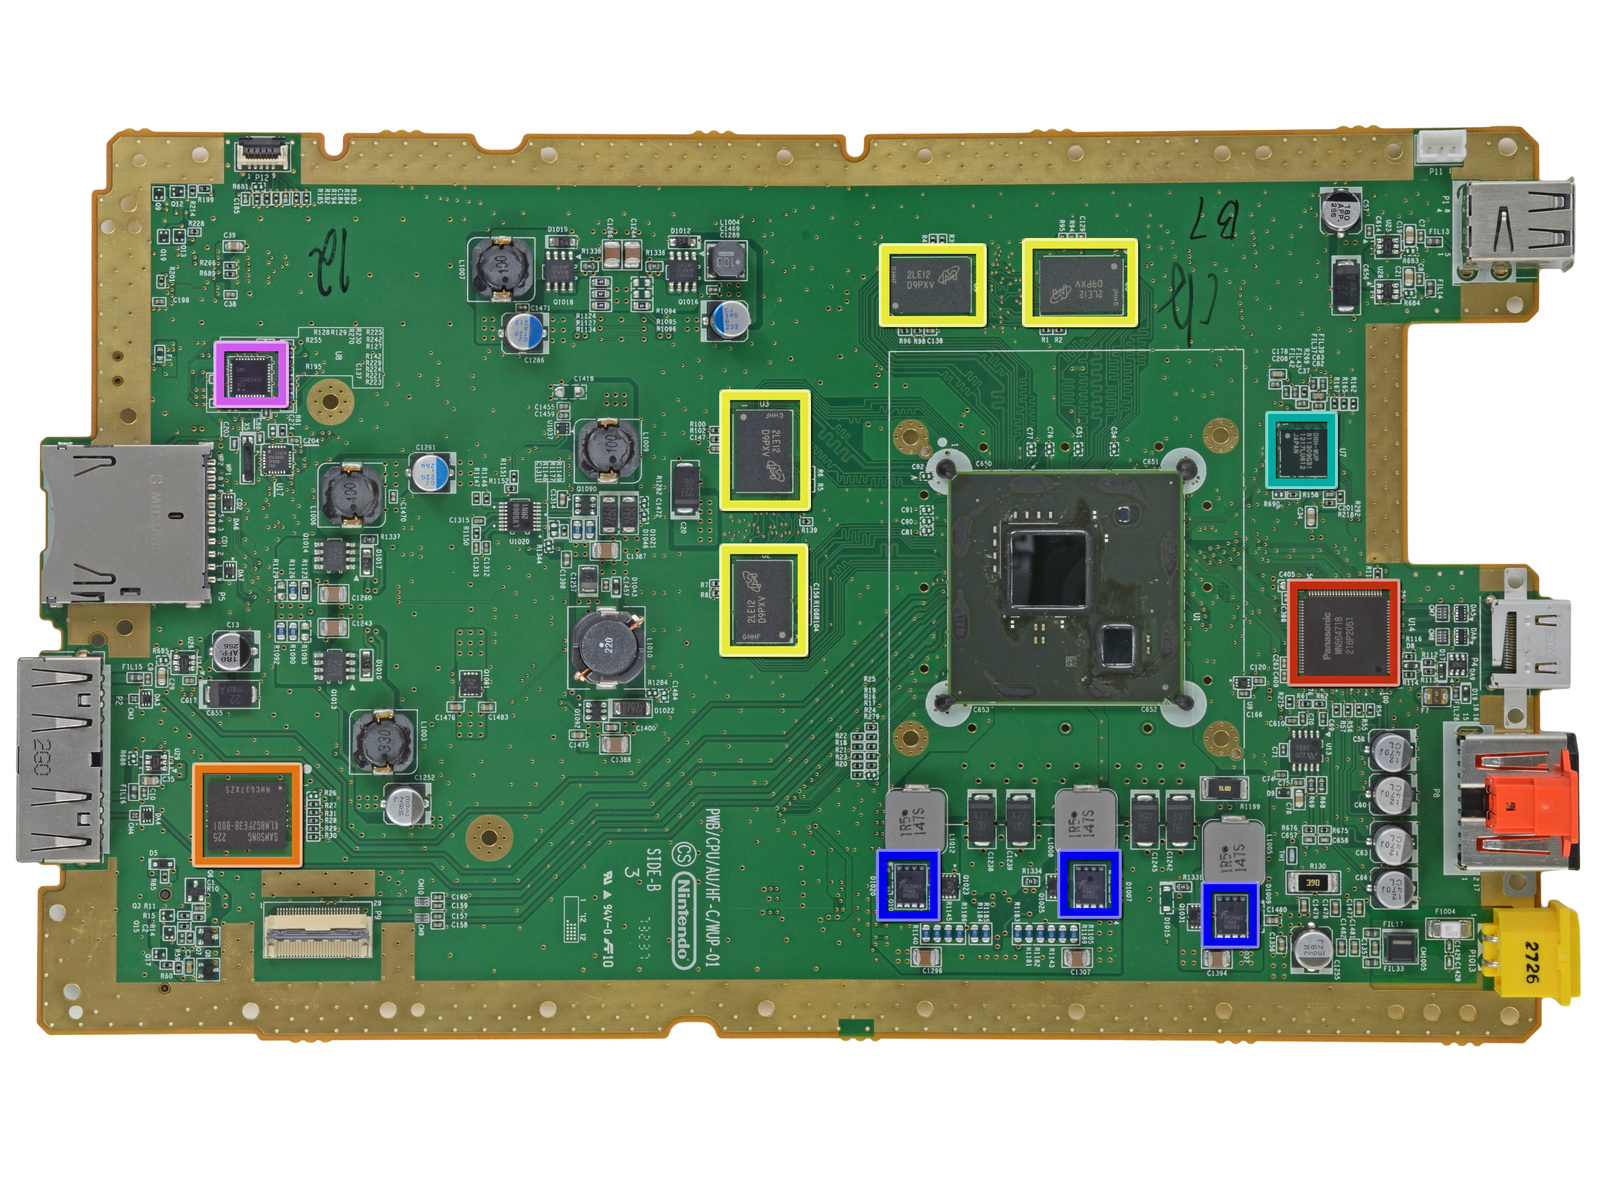 The Wii U motherboard, showing SDRAM in yellow and unshielded CPU and GPU to the right.